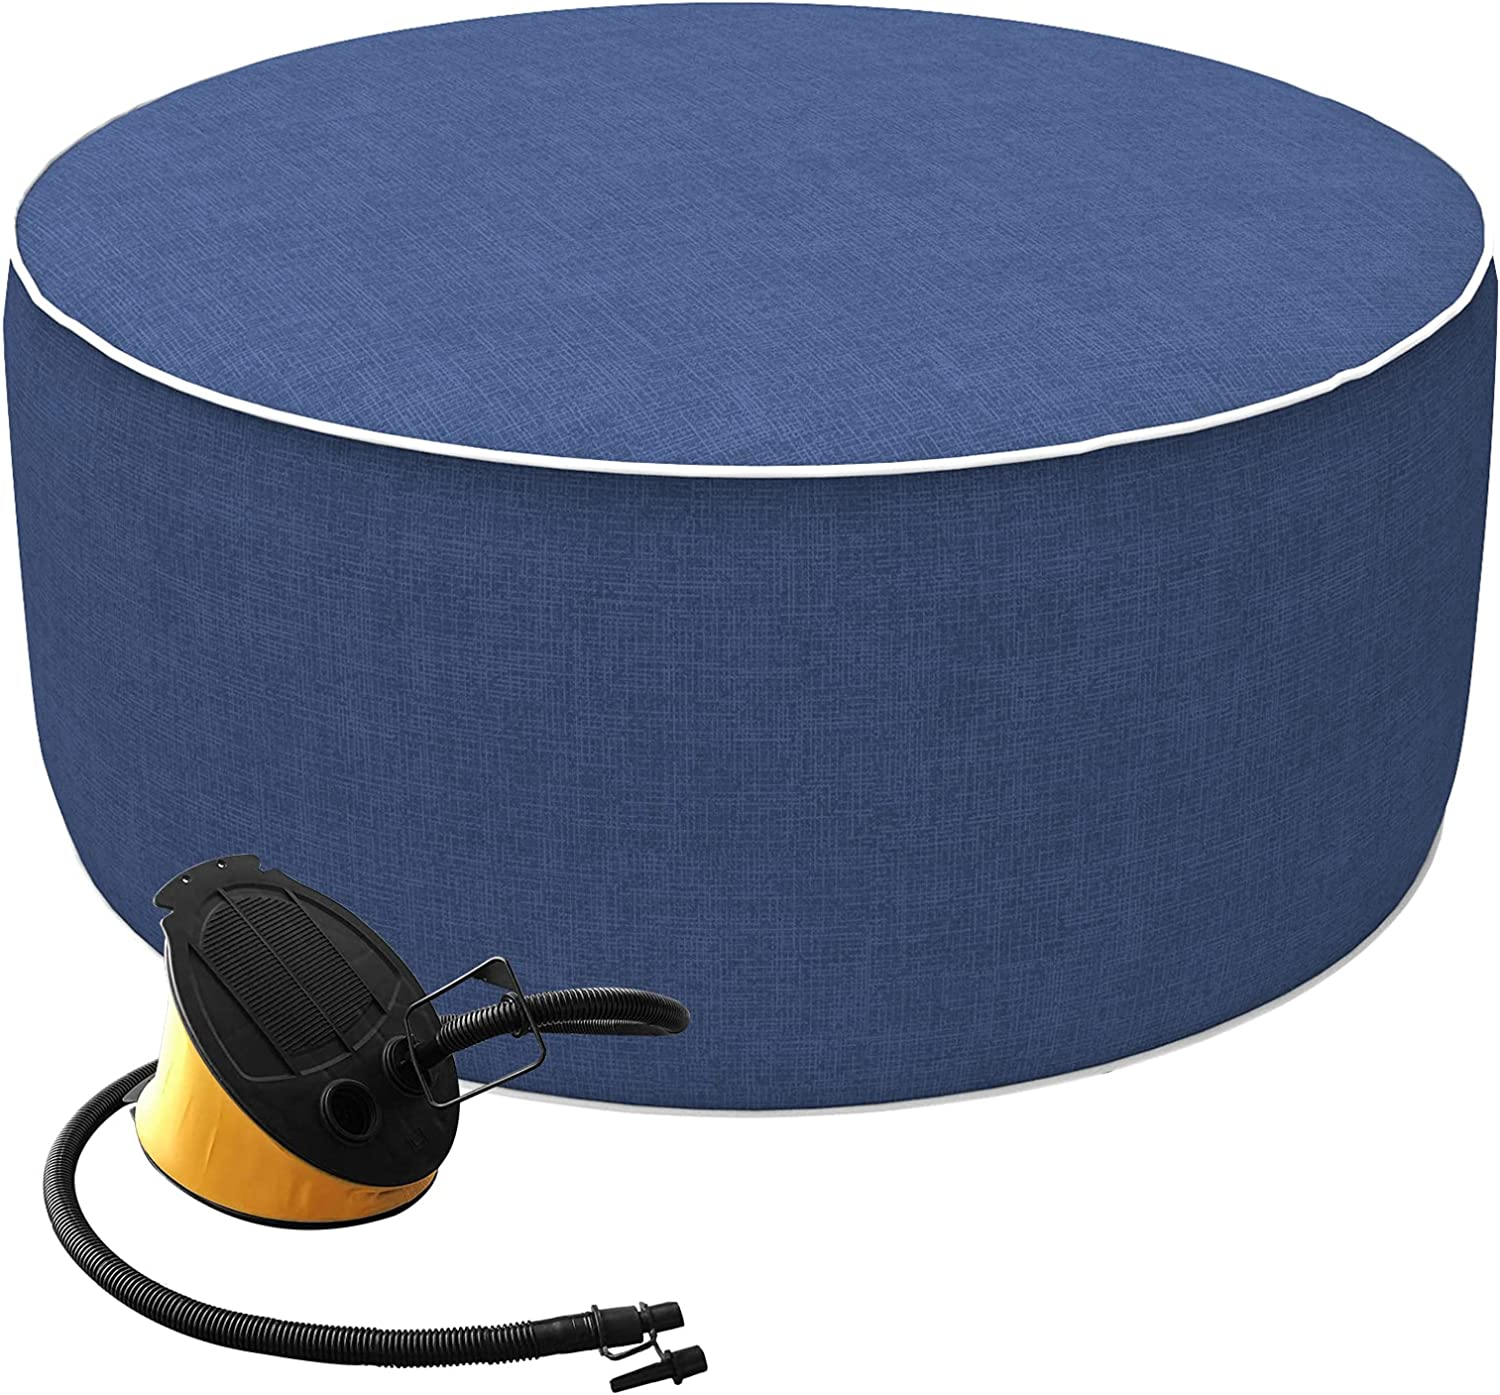 Joyside Outdoor Inflatable Ottoman New product! New type A Portable Round with 4 years warranty